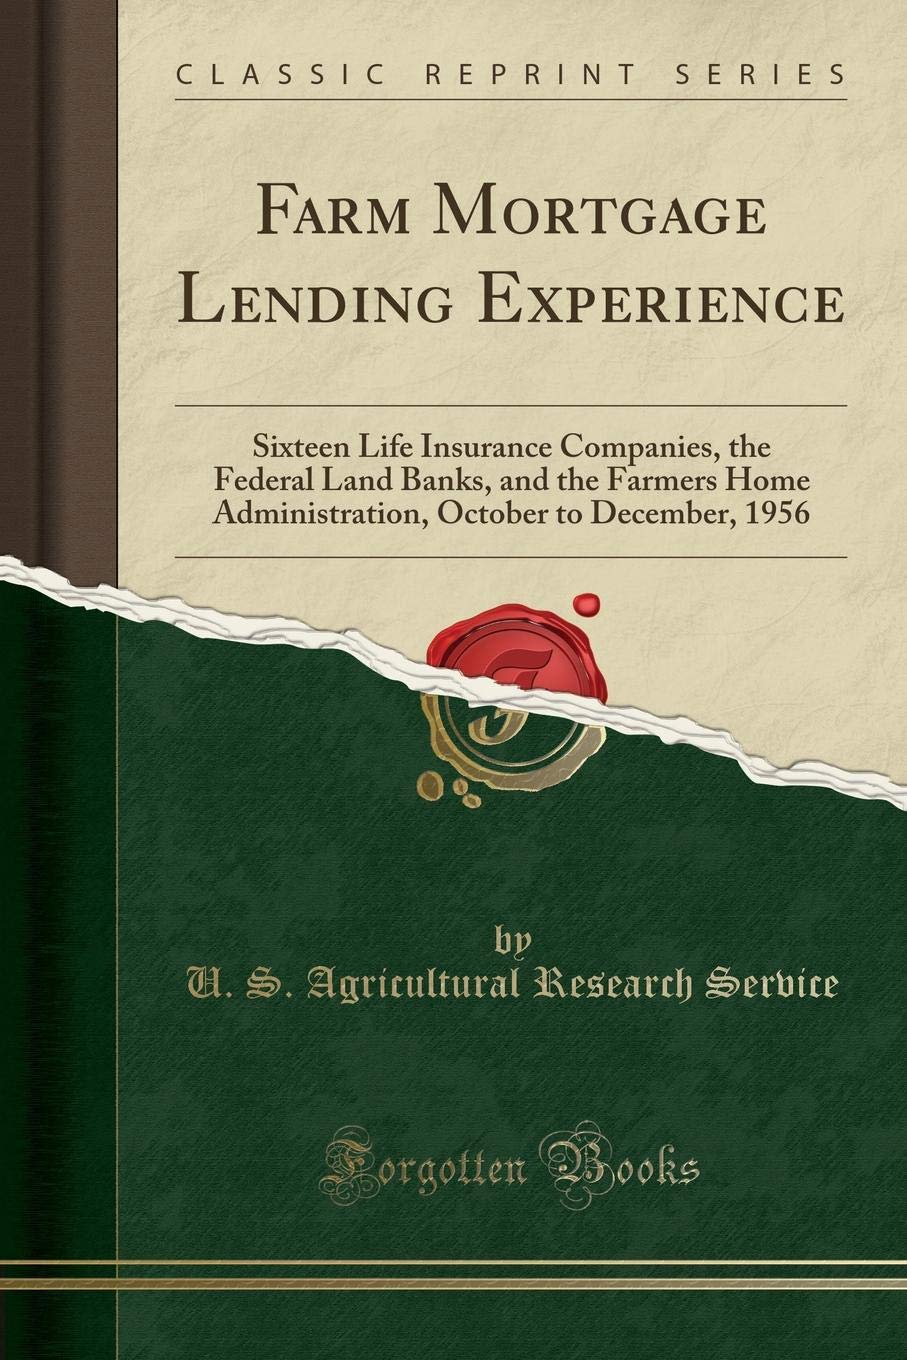 Read Online Farm Mortgage Lending Experience: Sixteen Life Insurance Companies, the Federal Land Banks, and the Farmers Home Administration, October to December, 1956 (Classic Reprint) ebook